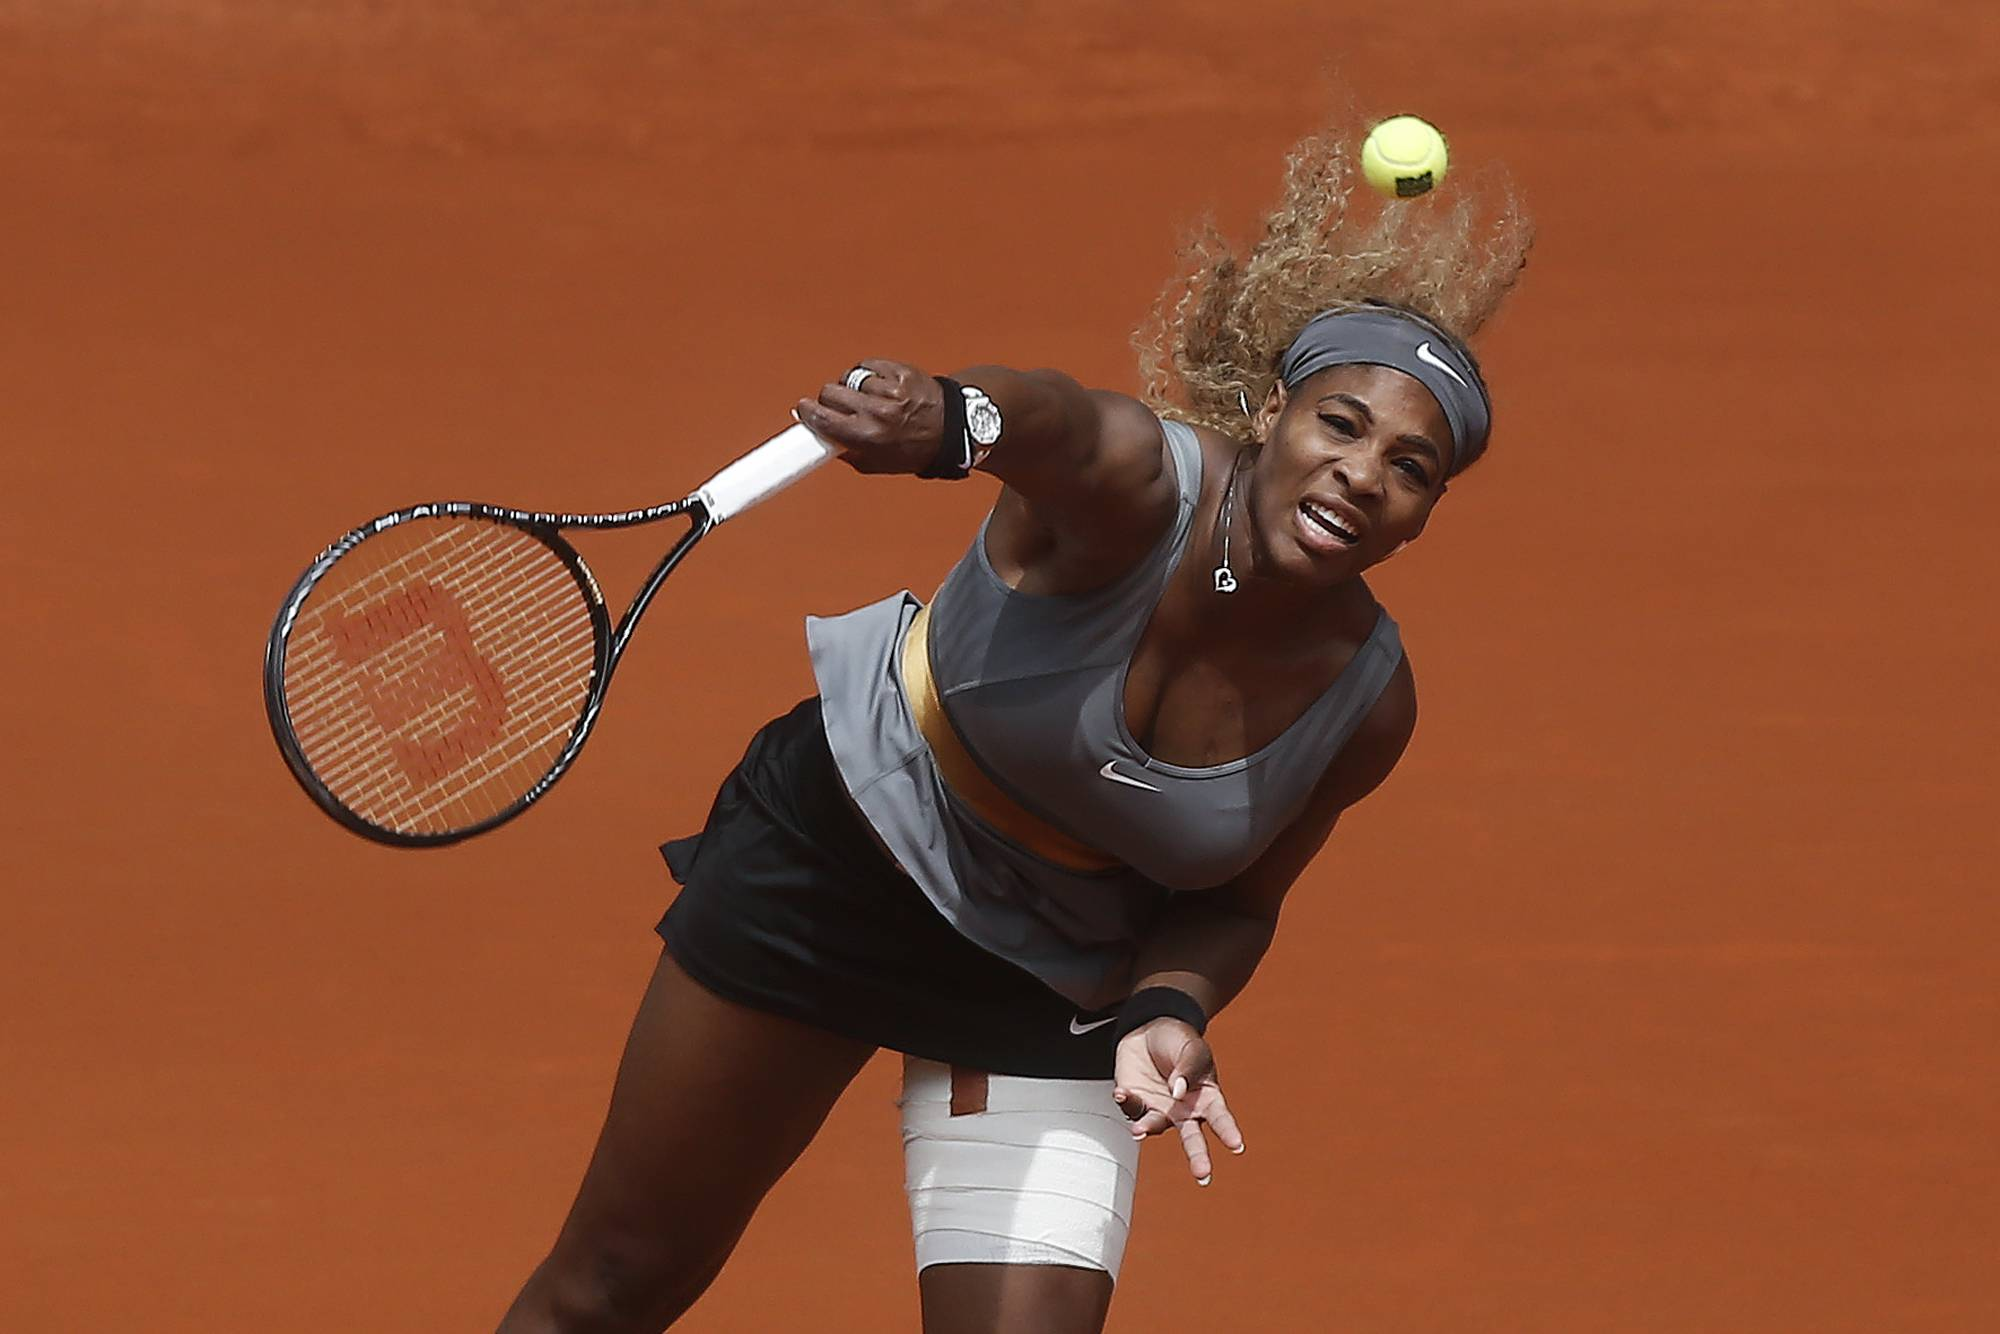 Serena Williams from U.S. serves during a Madrid Open tennis tournament match against Shuai Peng from China, in Madrid, Spain, Wednesday, May 7, 2014.